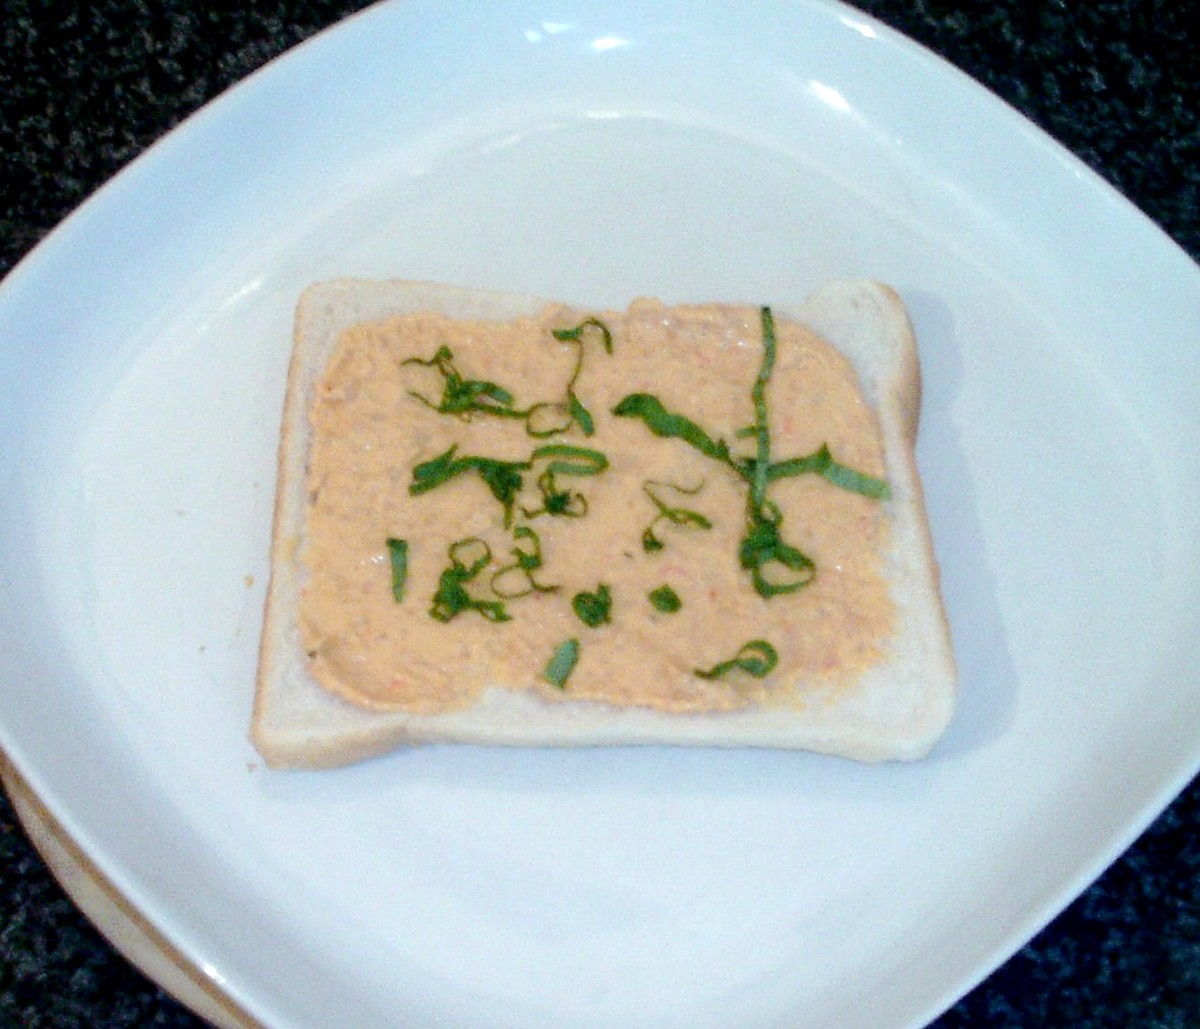 Houmous is spread on bread and garnished with shredded basil